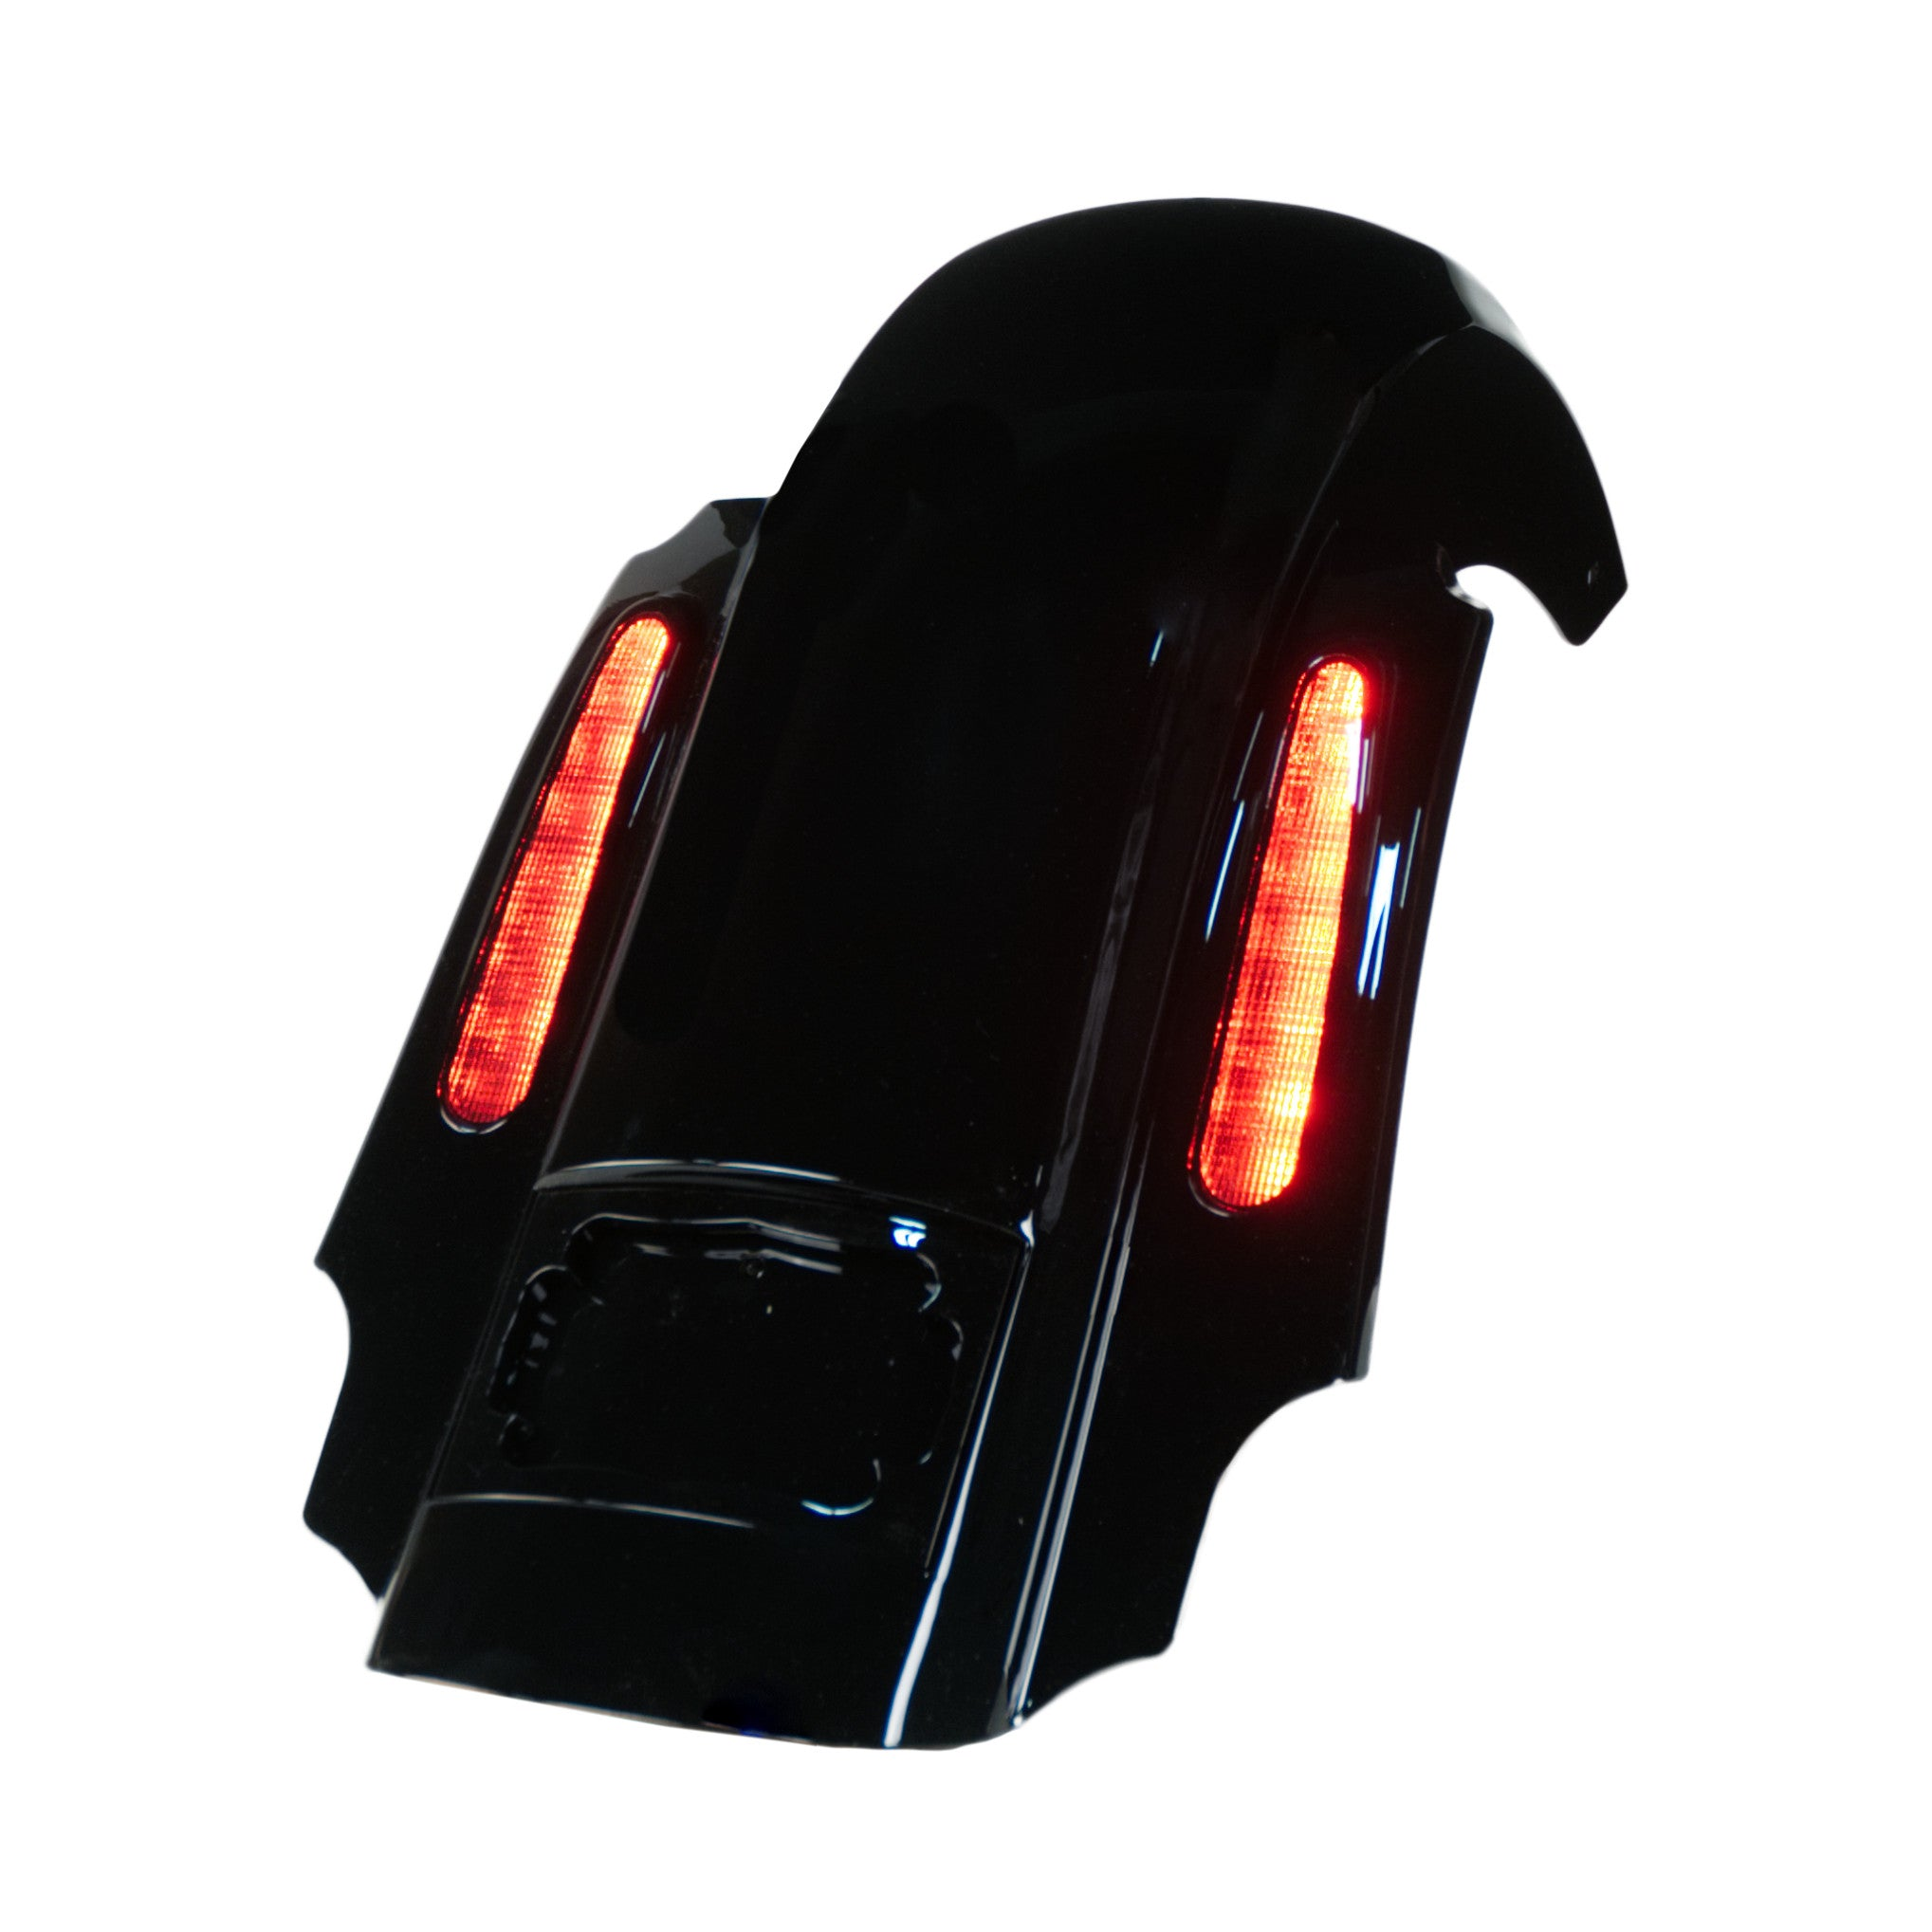 LED Lights match rear fender ABS CVO STYLE TAILLIGHTS FIT Extended Rear Fender